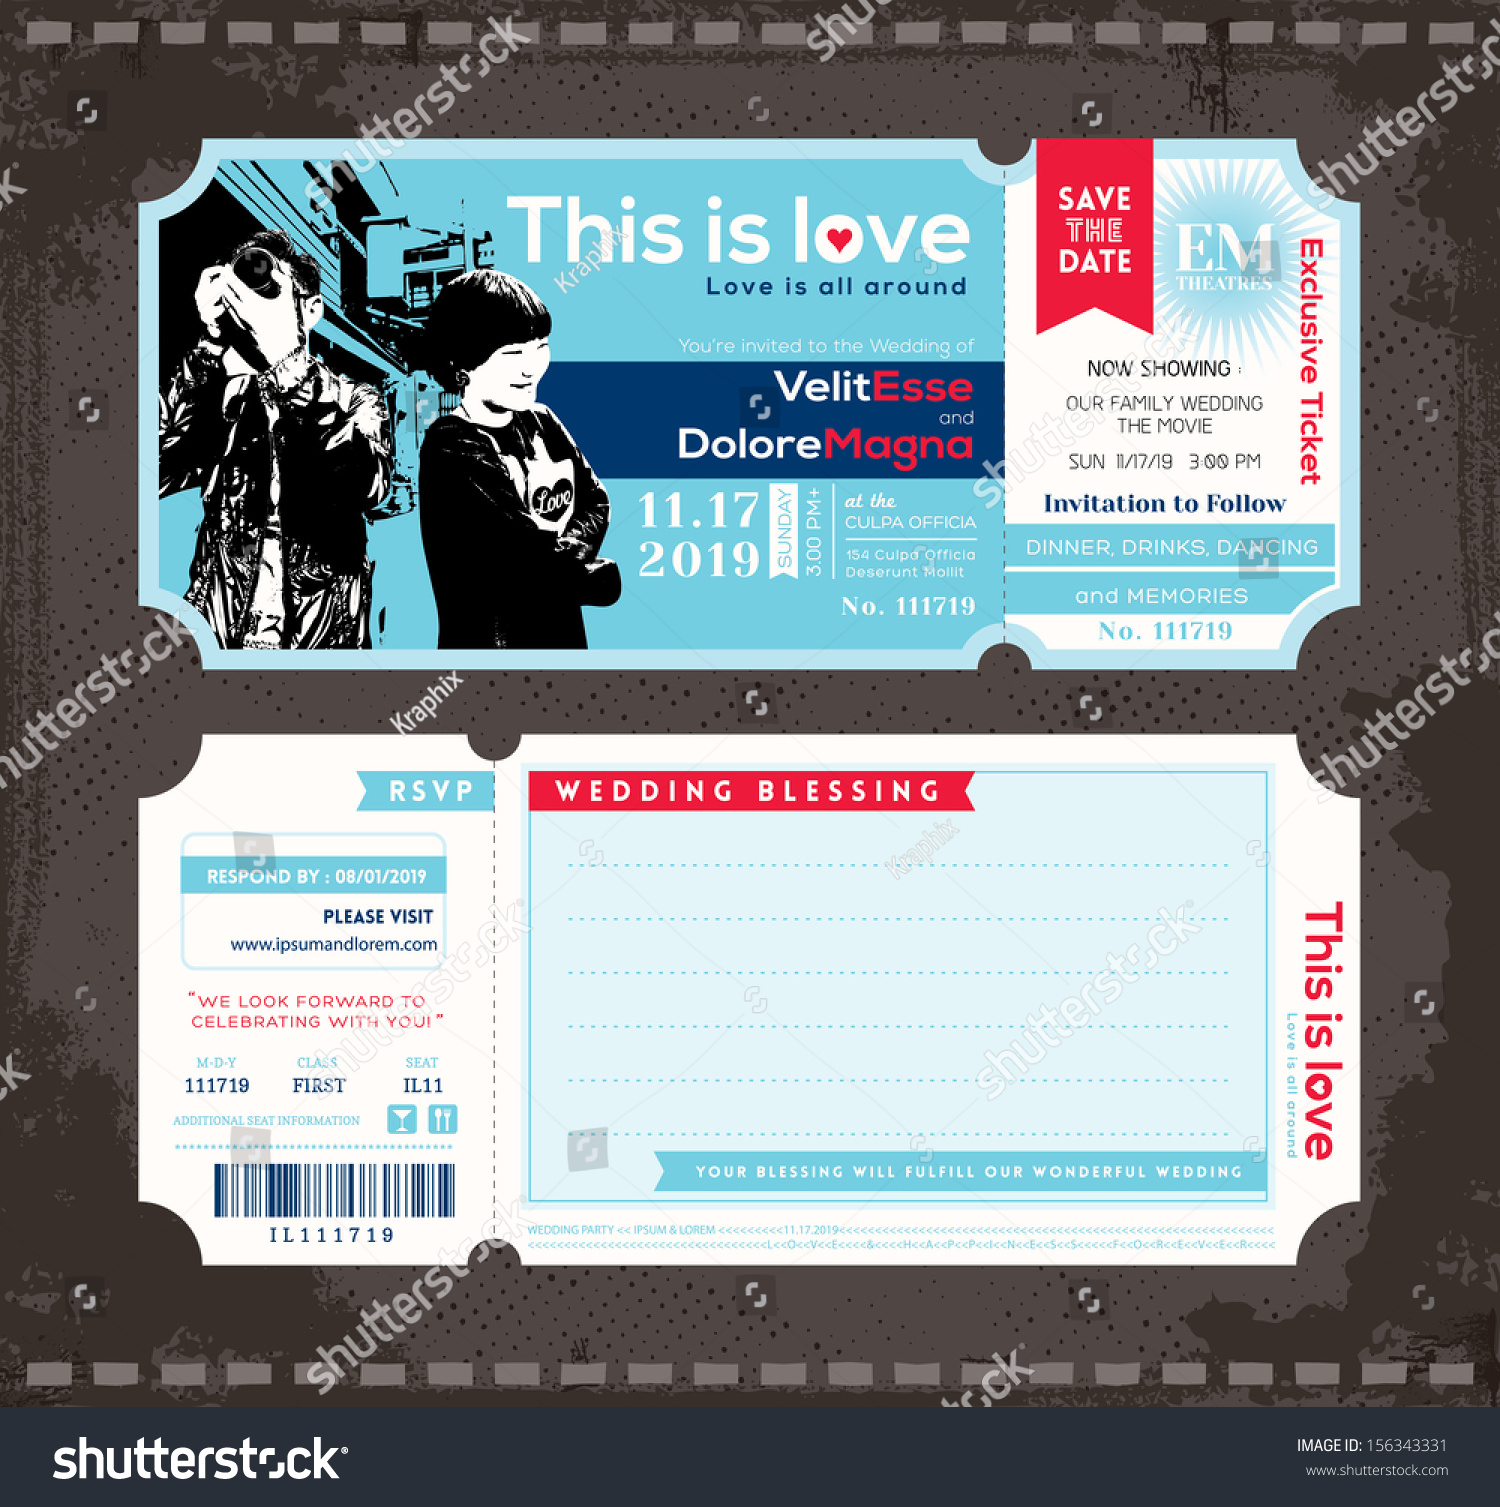 Vector Ticket Wedding Invitation Design Template Vector – Ticket Design Template